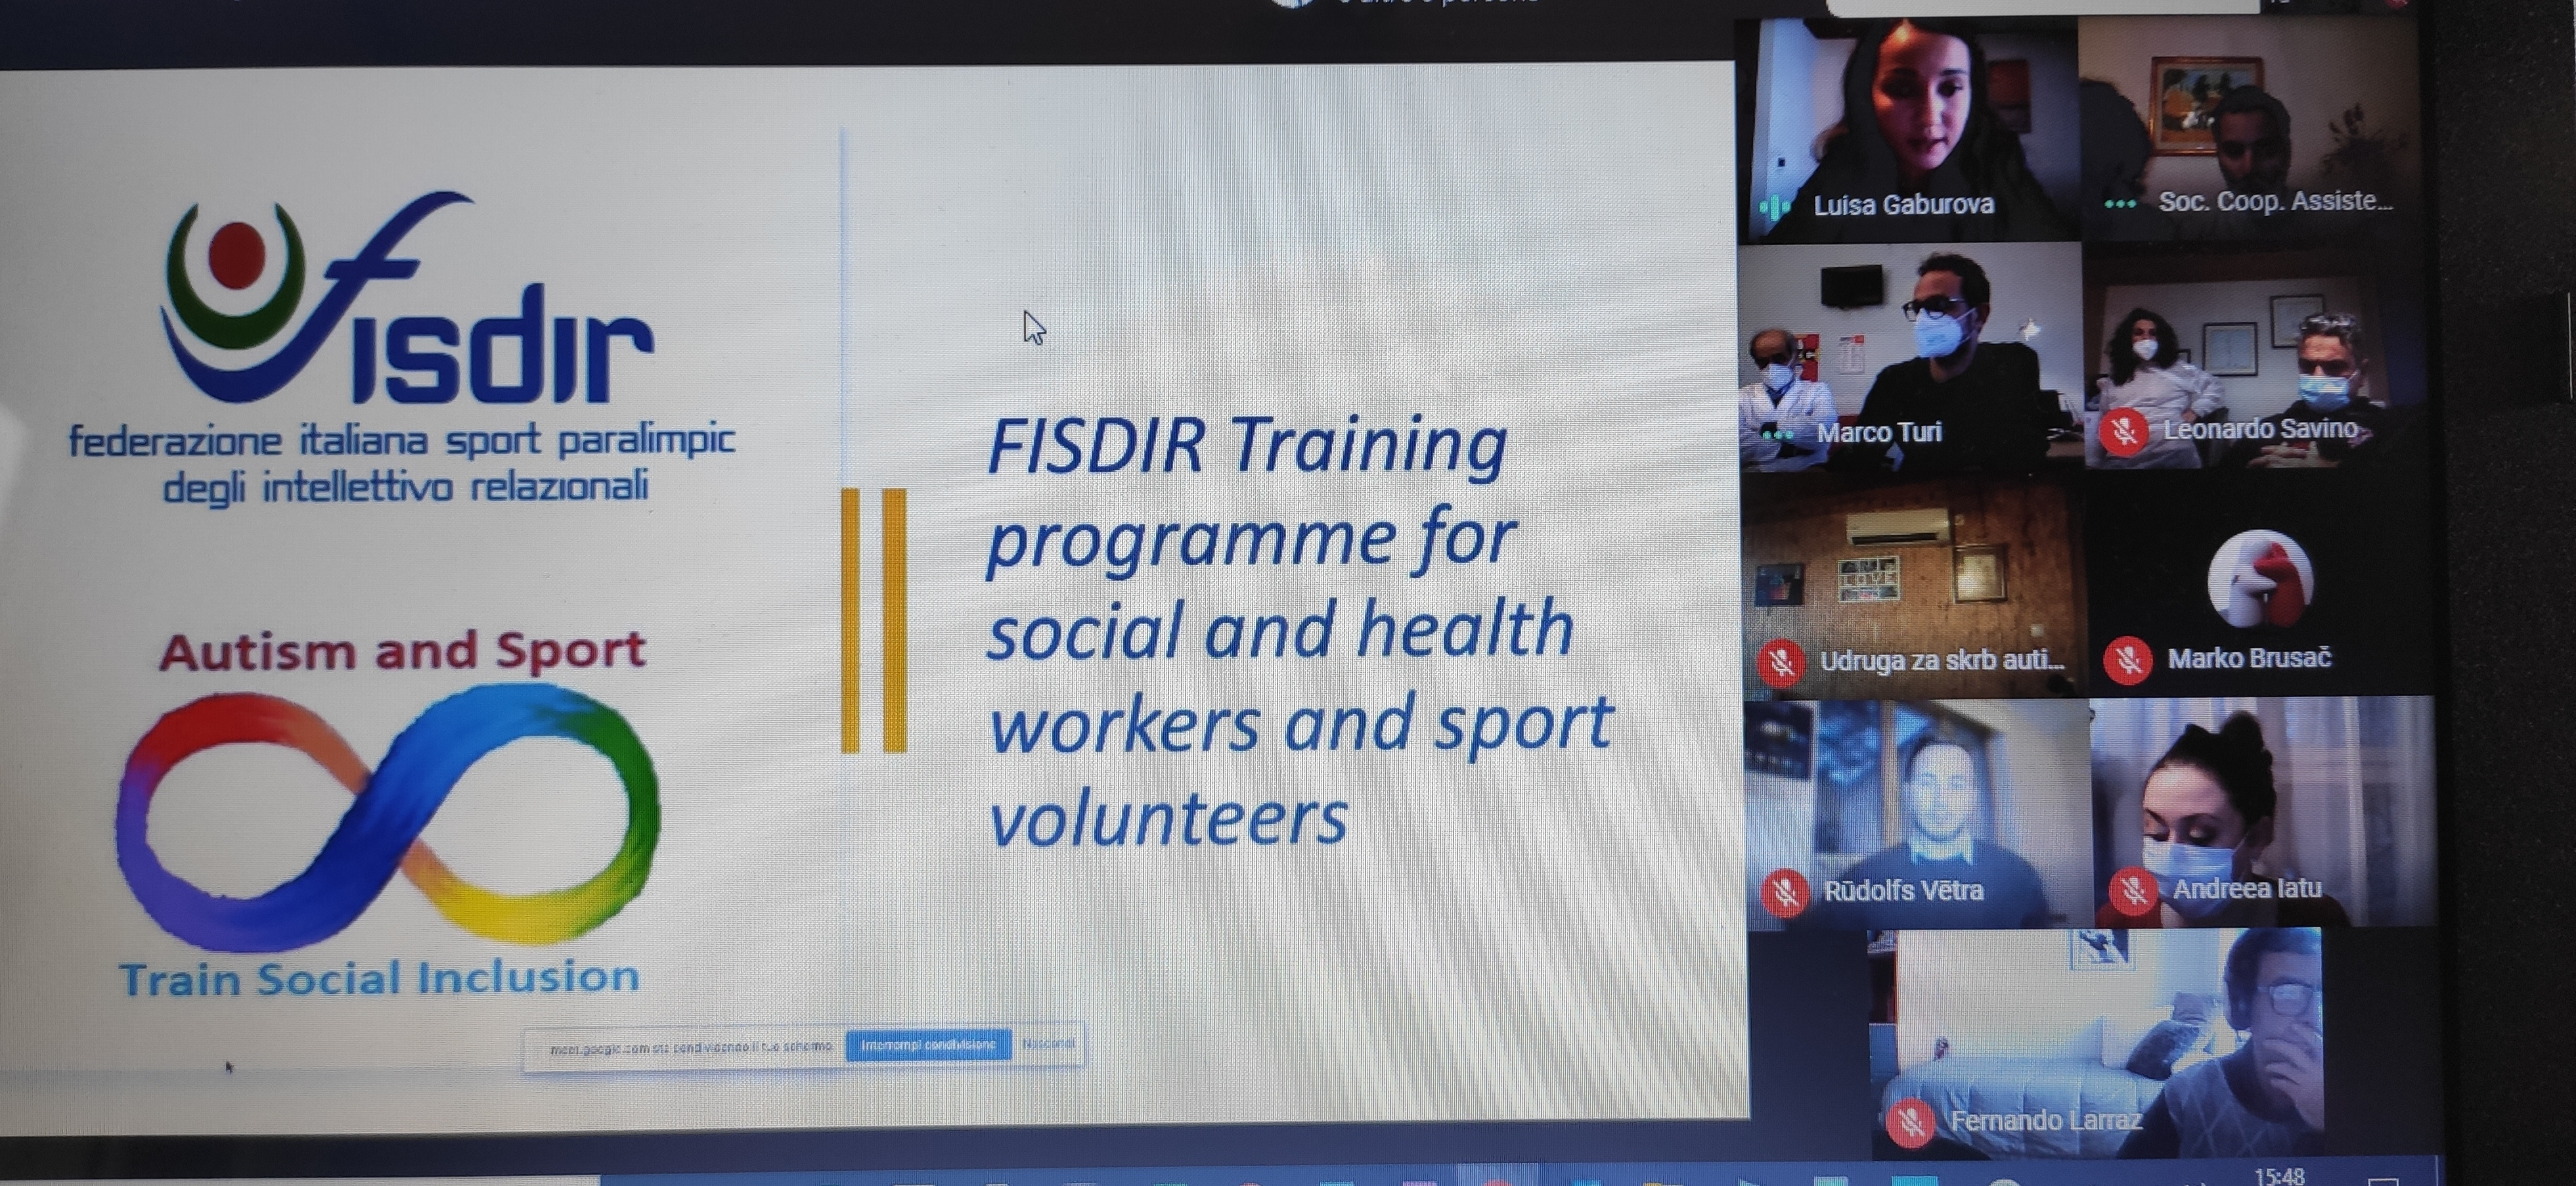 """Conference call """"Autism and sport: Train Social inclusion"""" project"""